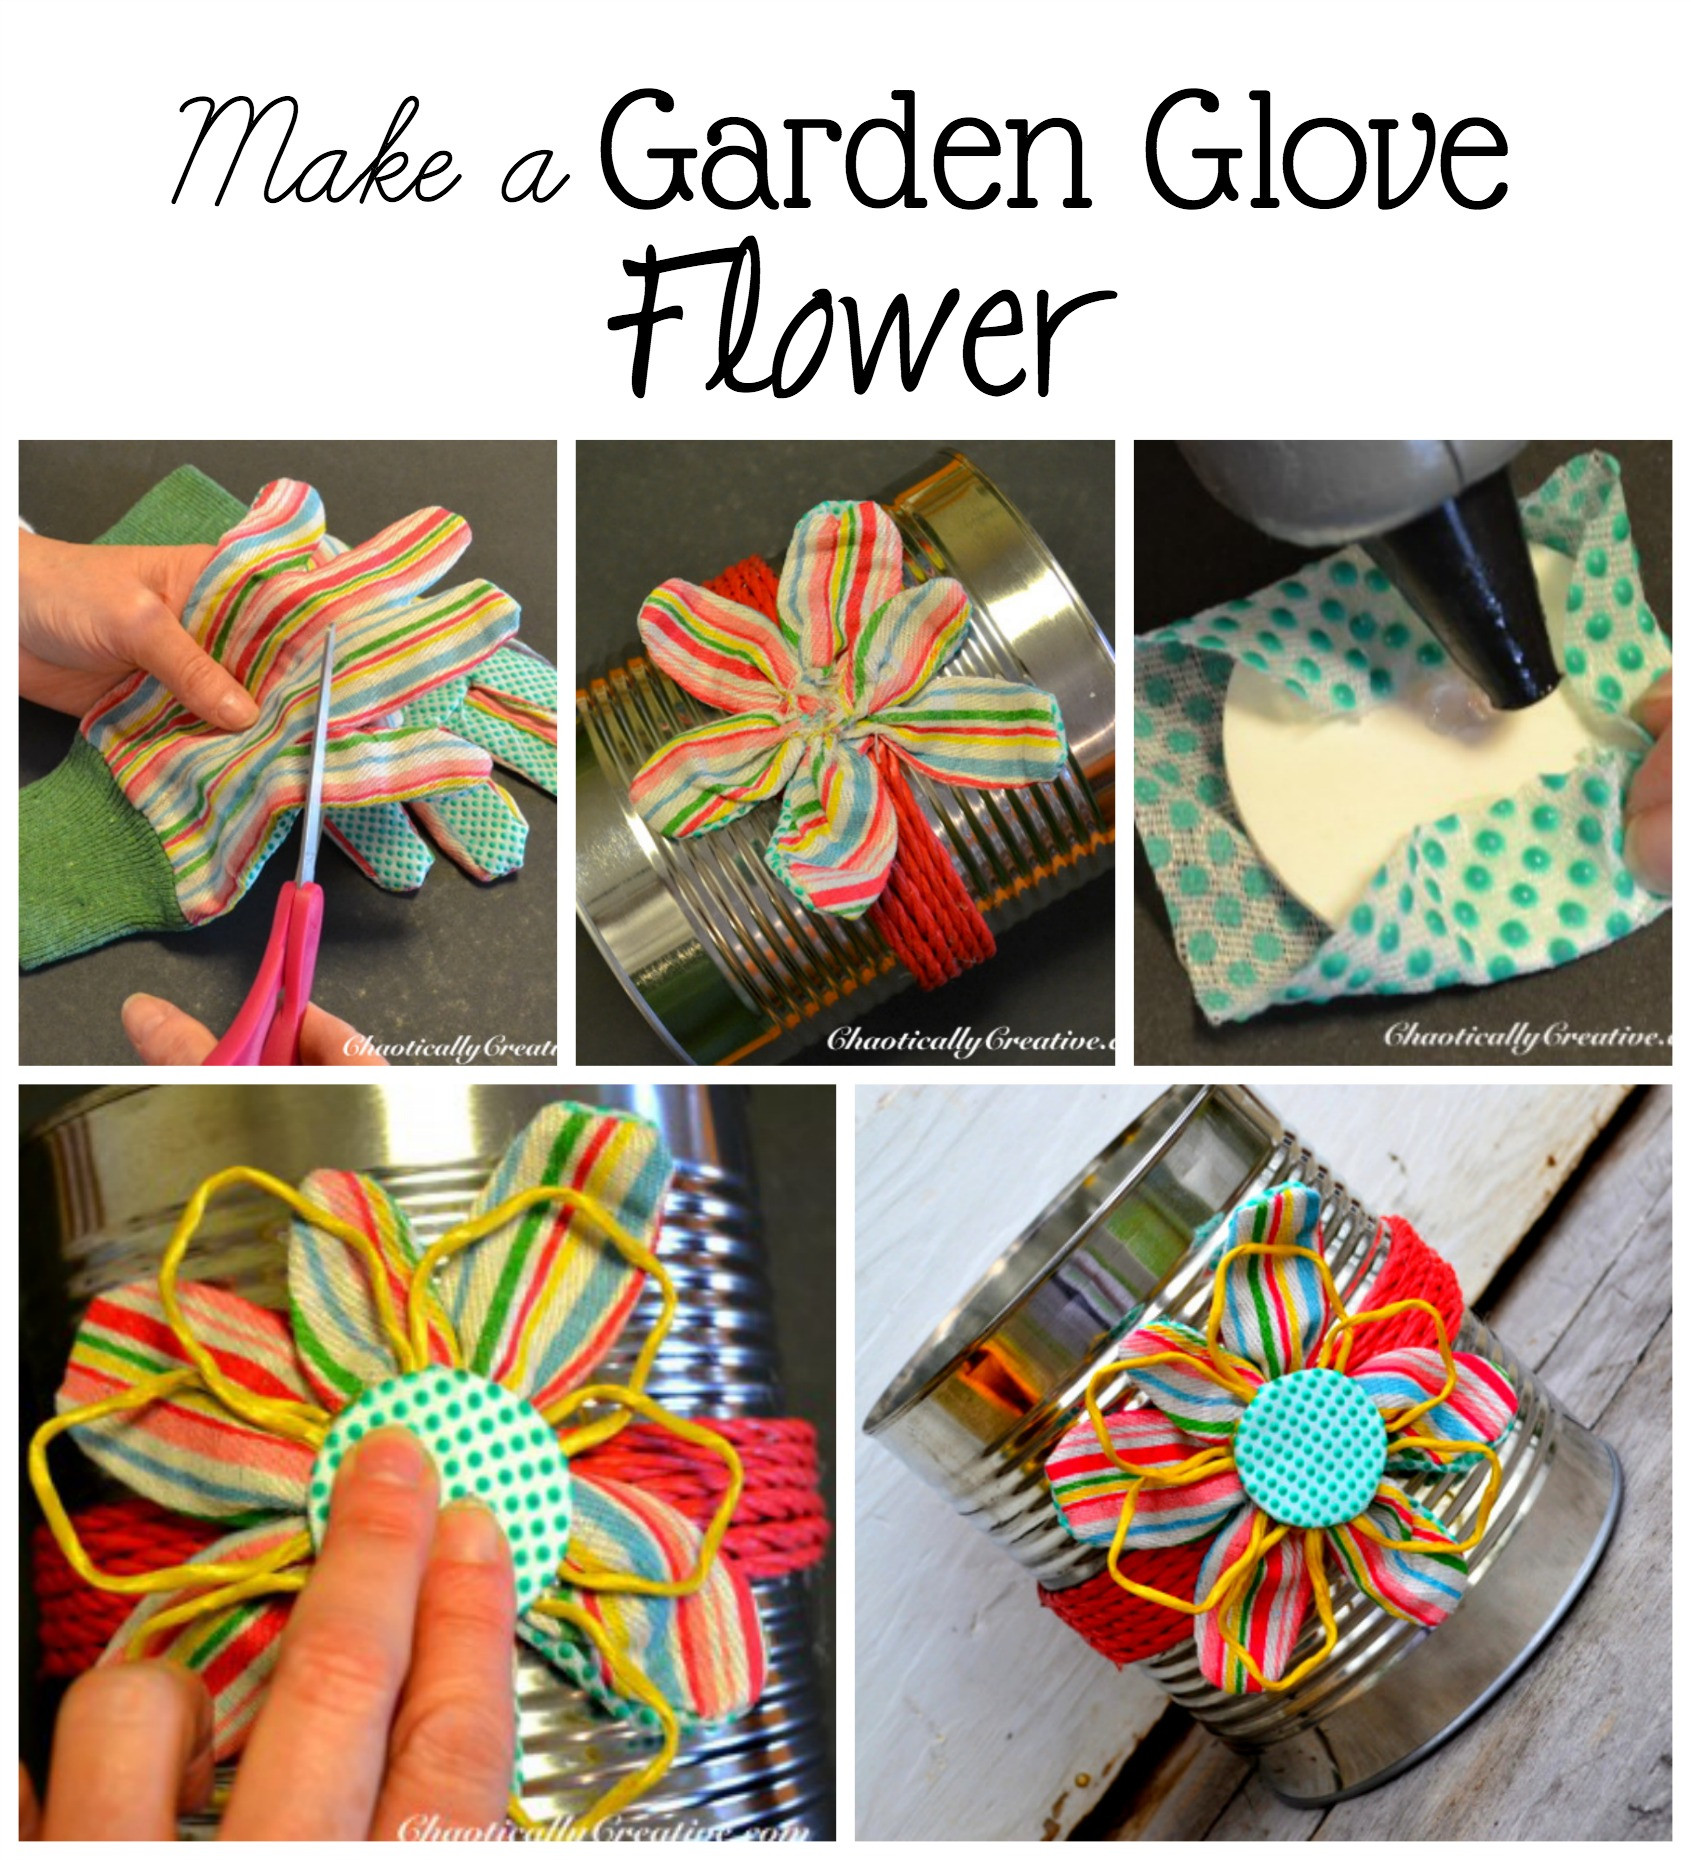 Best ideas about Dollar Tree Craft Ideas . Save or Pin Gardener s Gift Dollar Tree Craft Chaotically Creative Now.